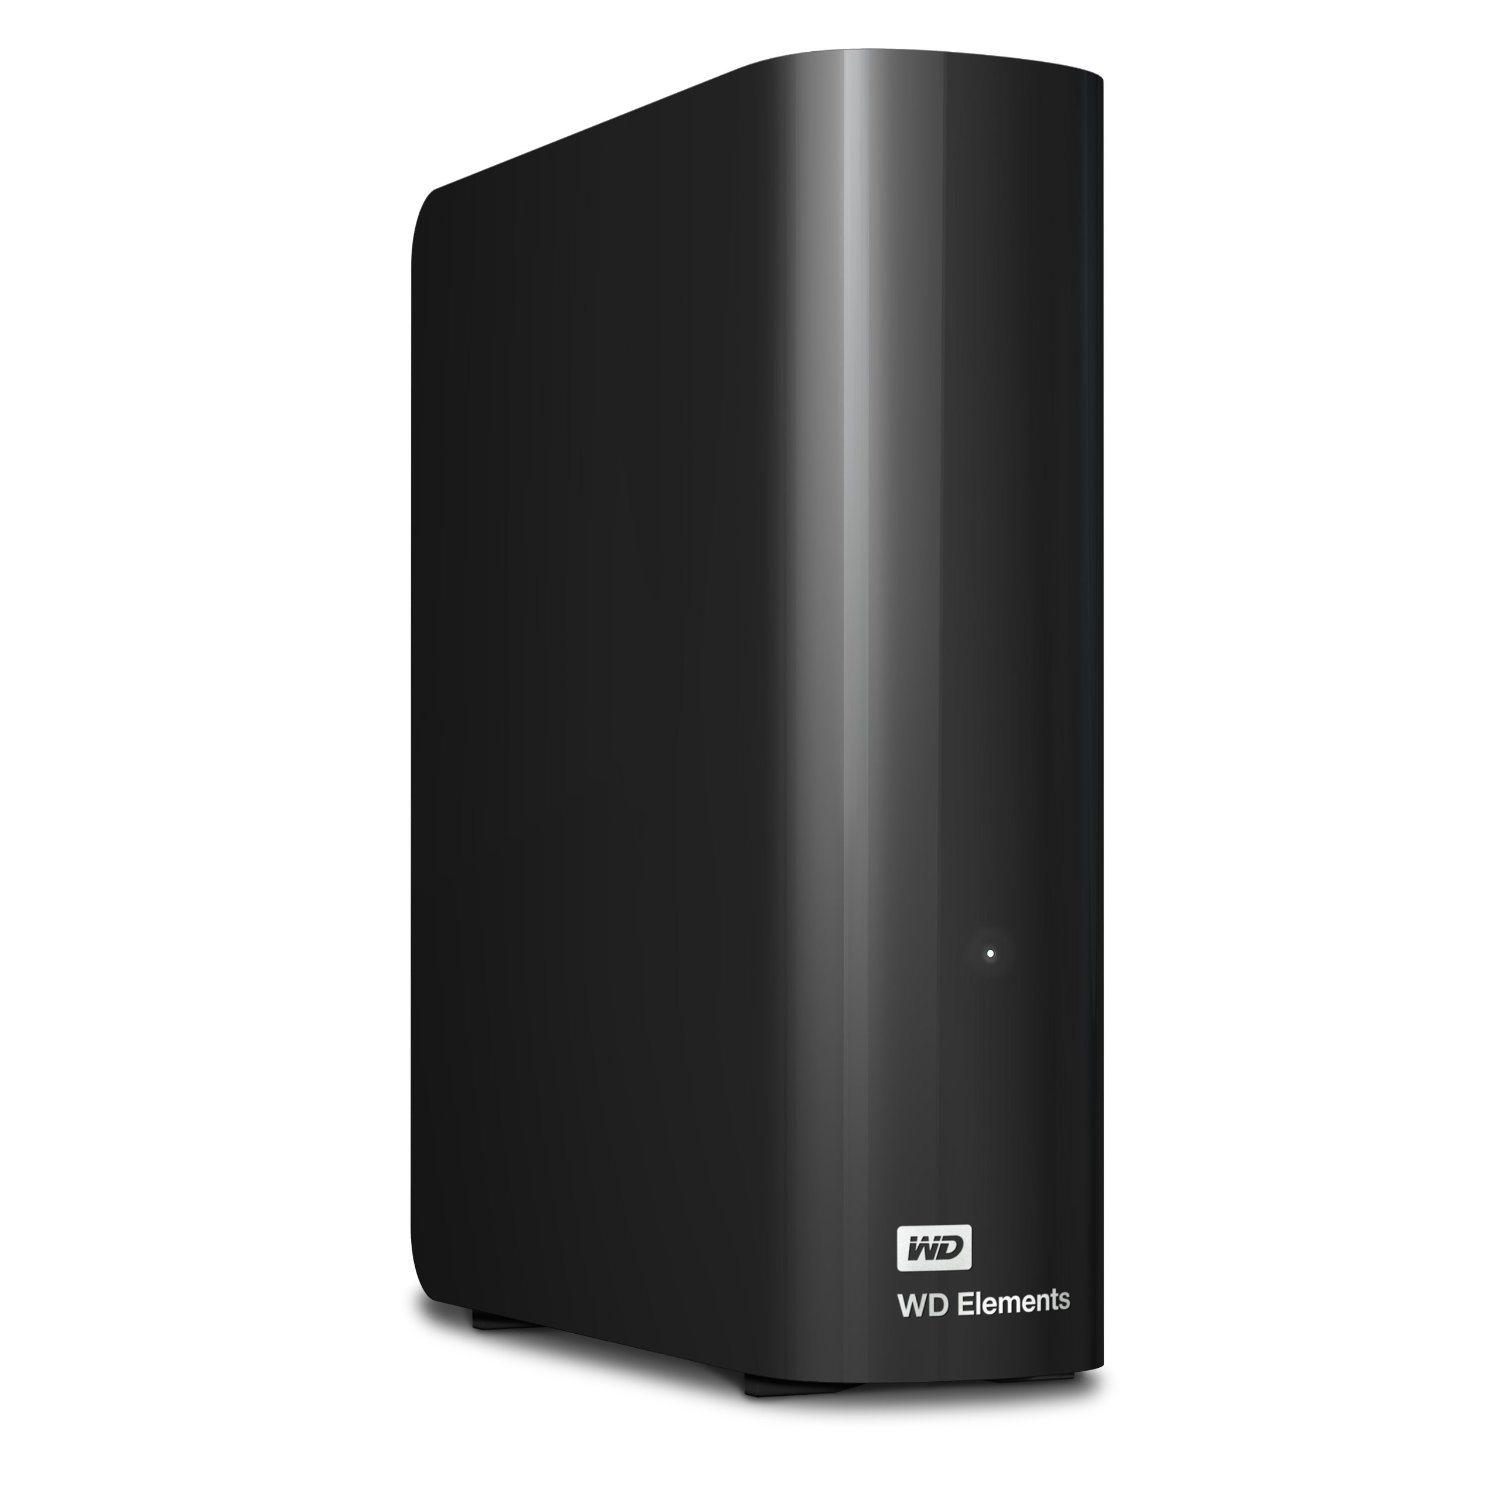 Western Digital Festplatte 5TB USB amazon